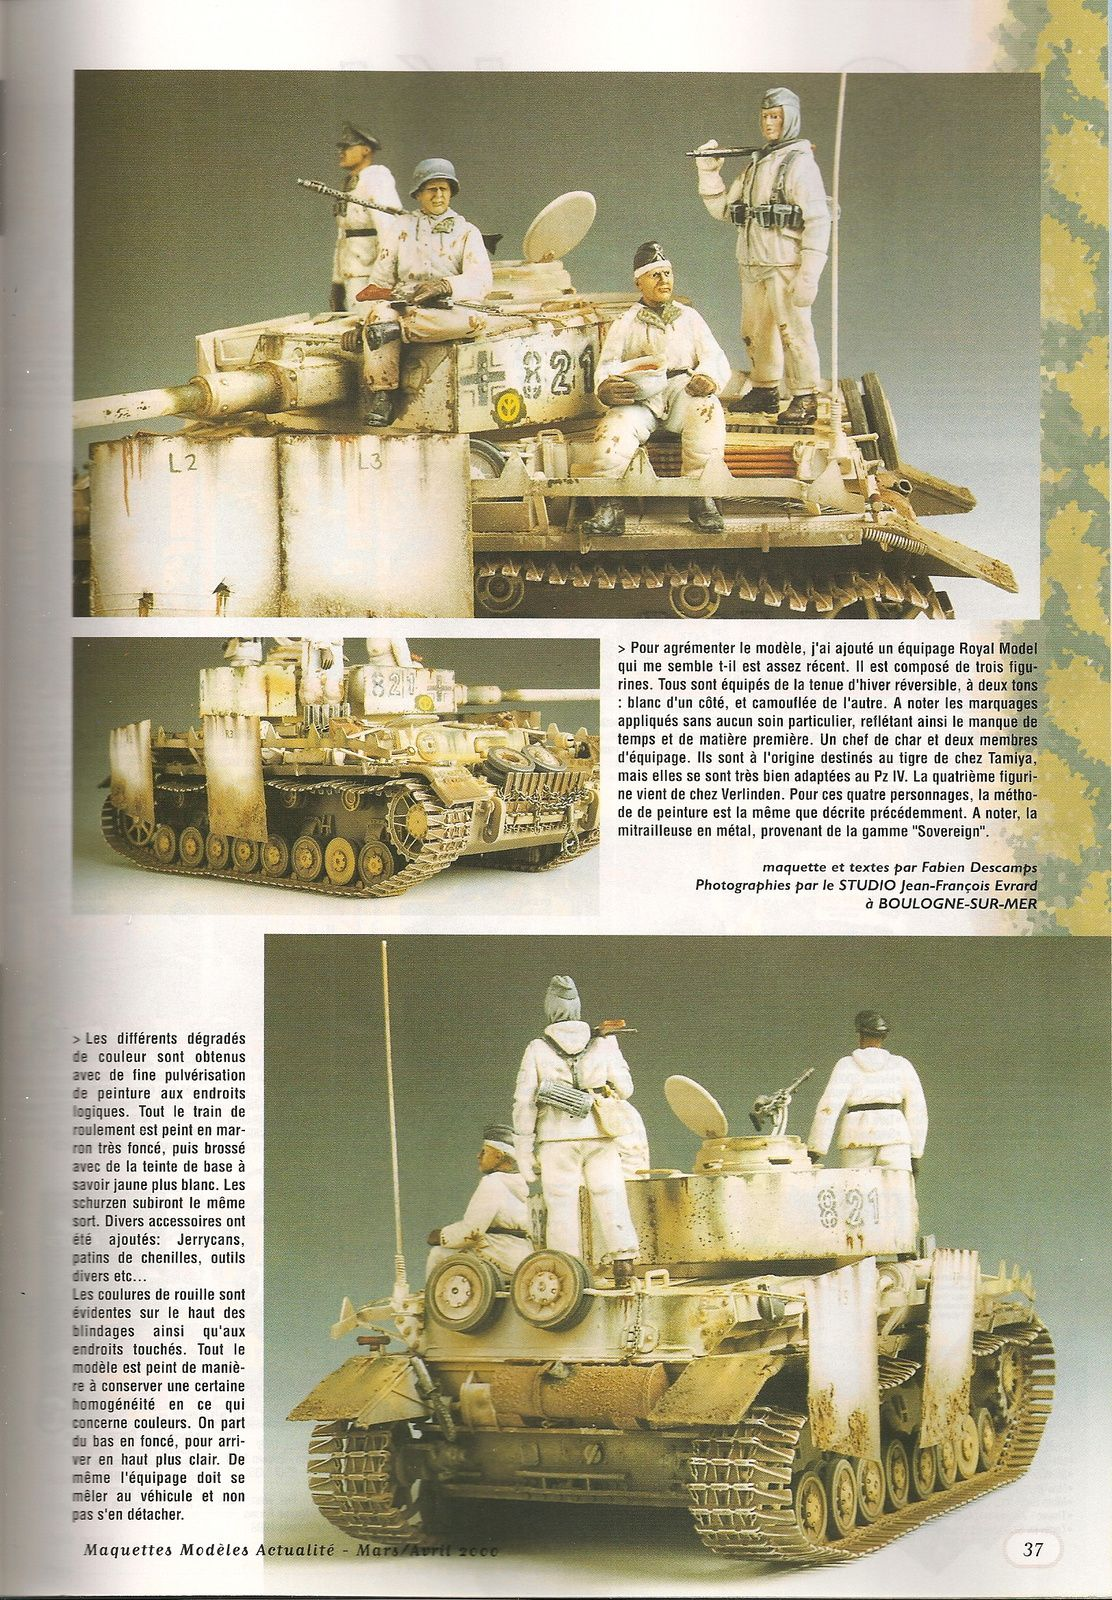 Panzer IV  AusfG Early H, Ausf H Early J